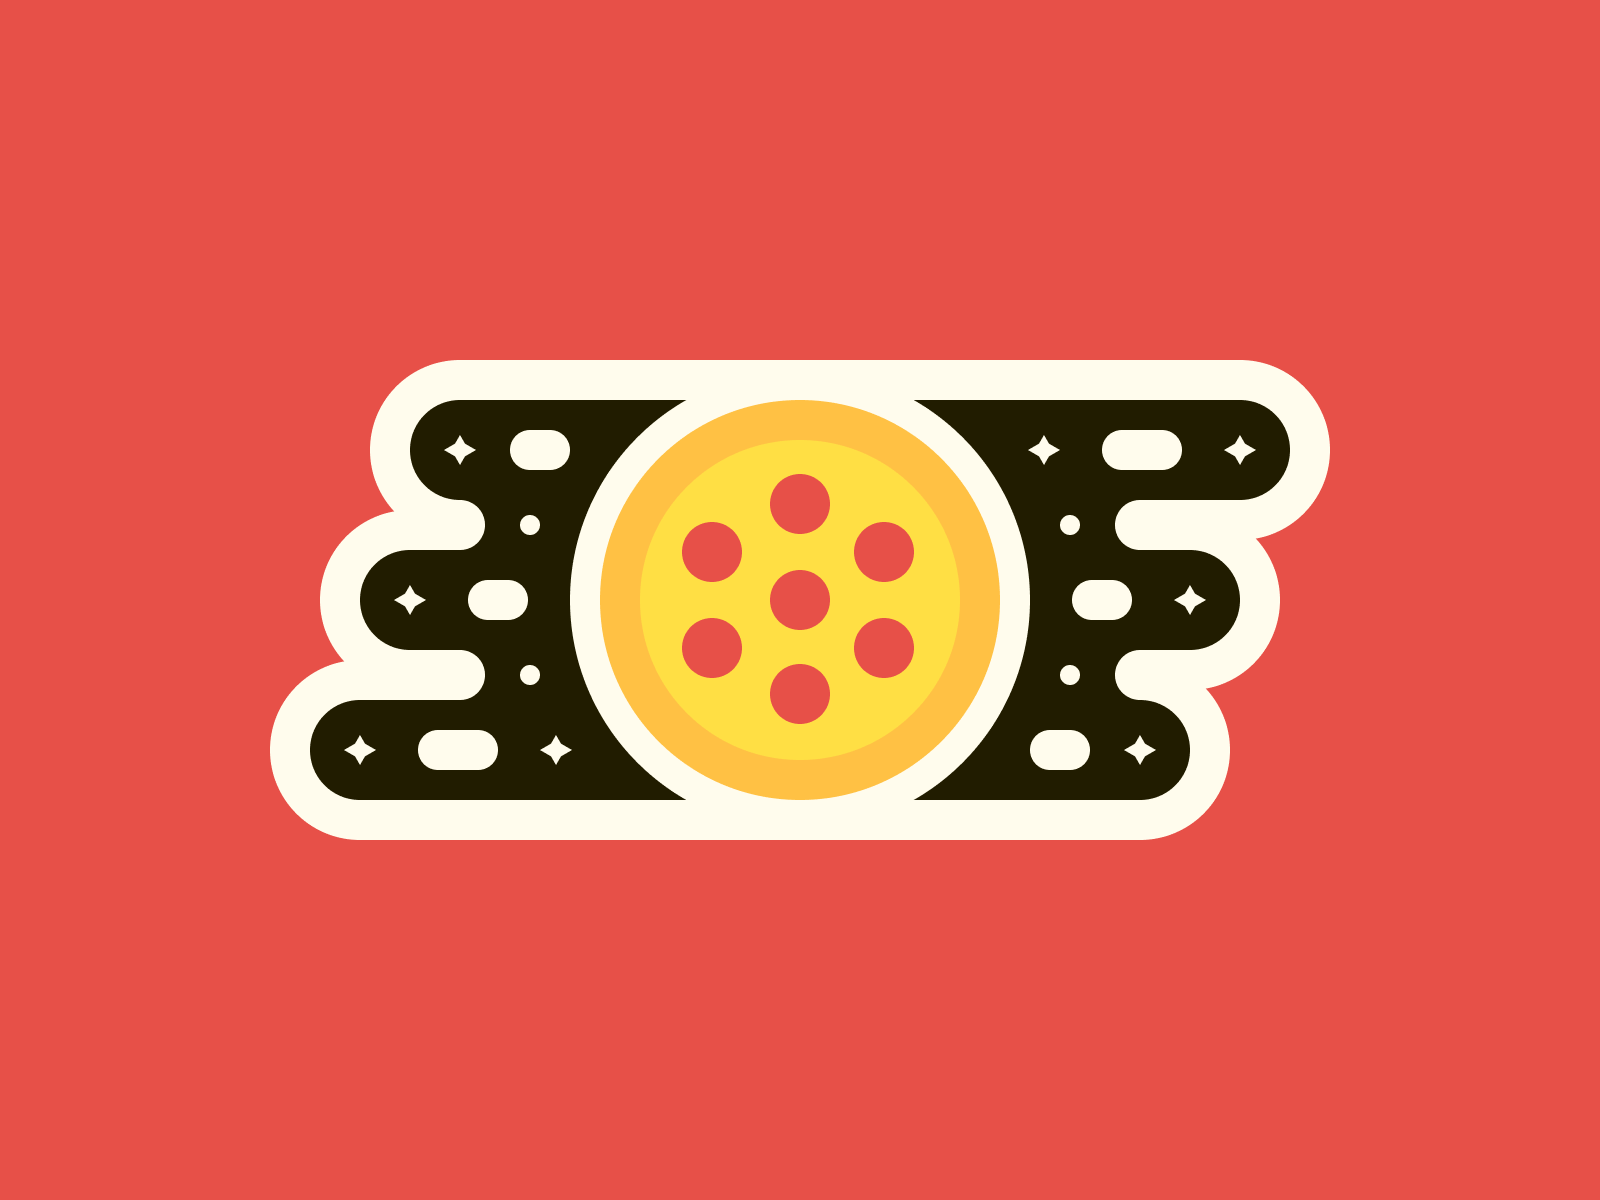 Space Pizza